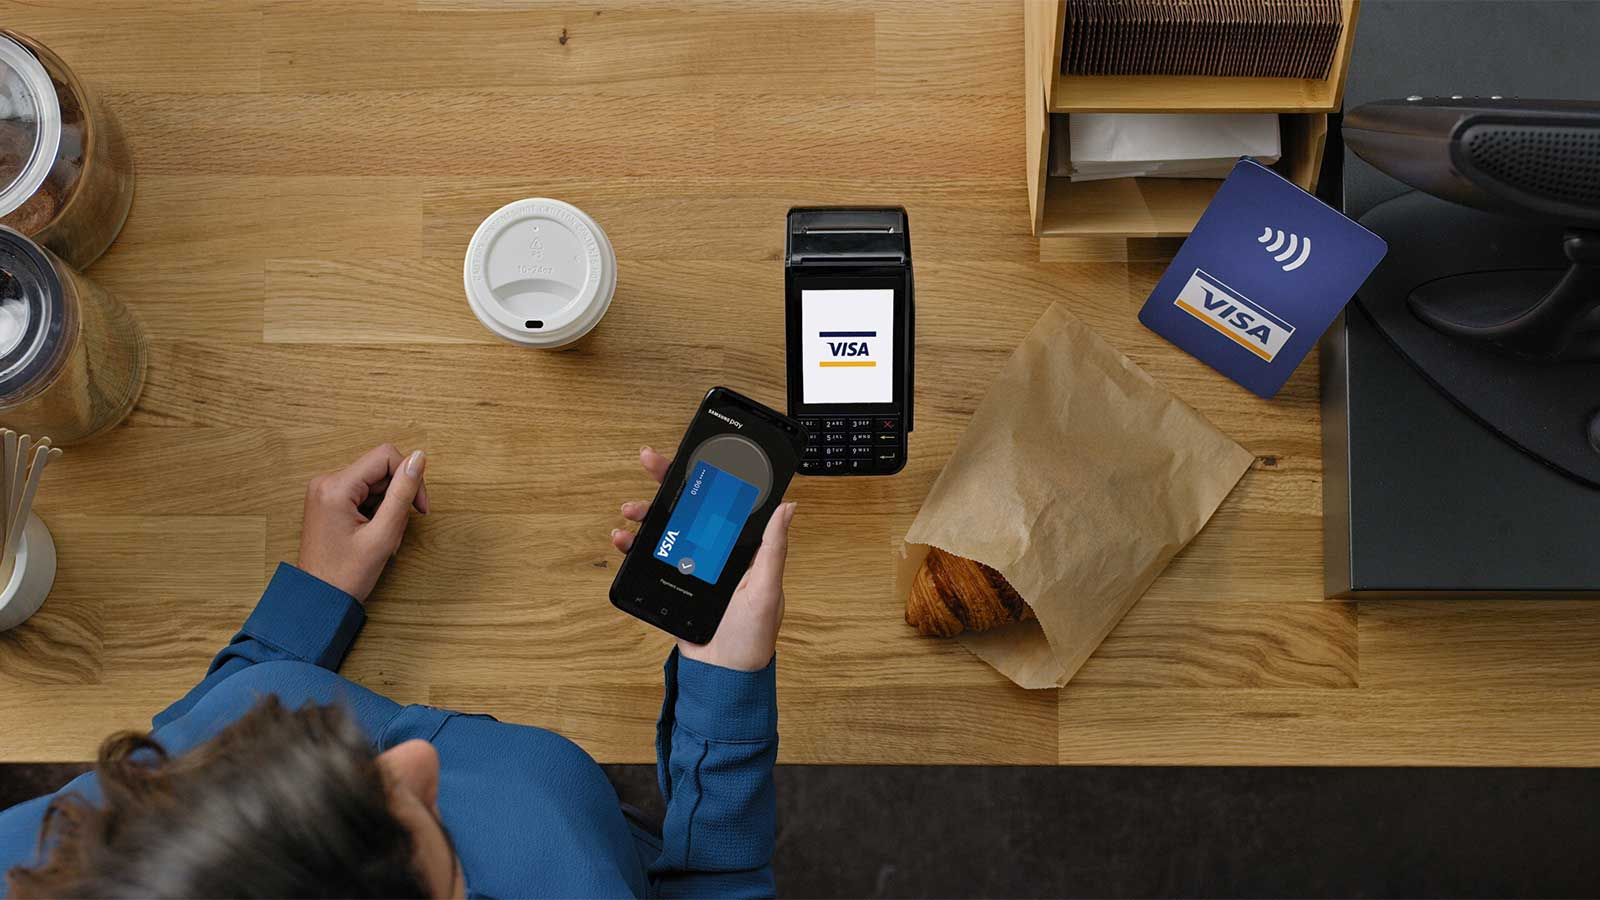 Customer paying for a purchase via a mobile phone using Samsung Pay.